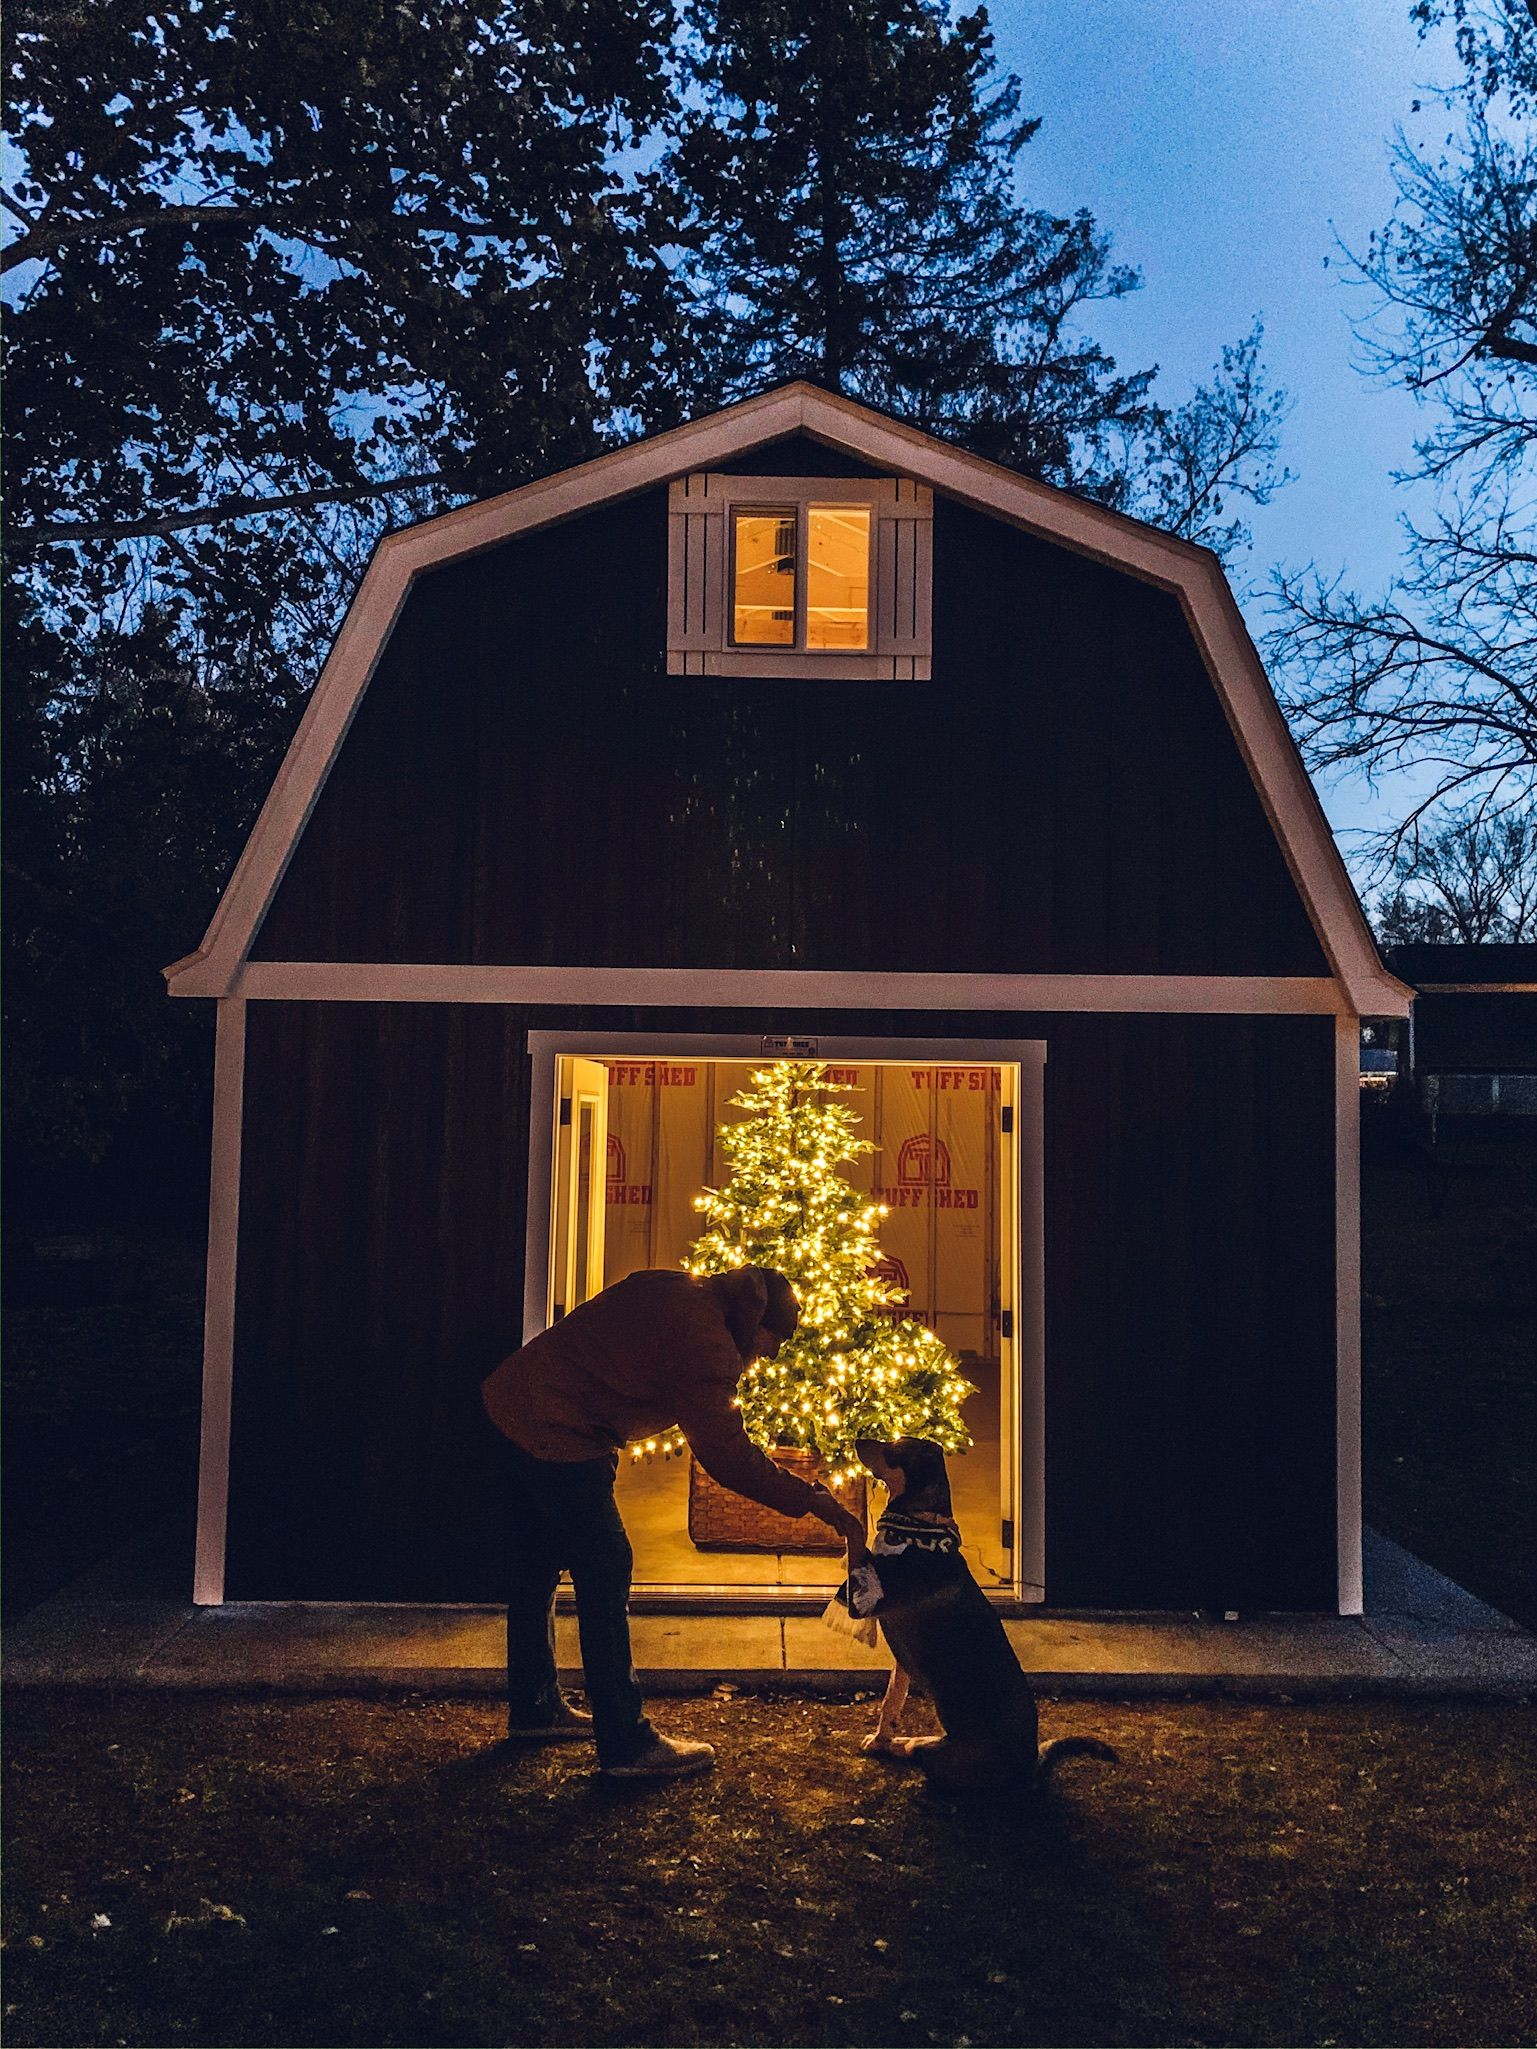 A We Shed with Kindred Vintage Tuff shed, Tree